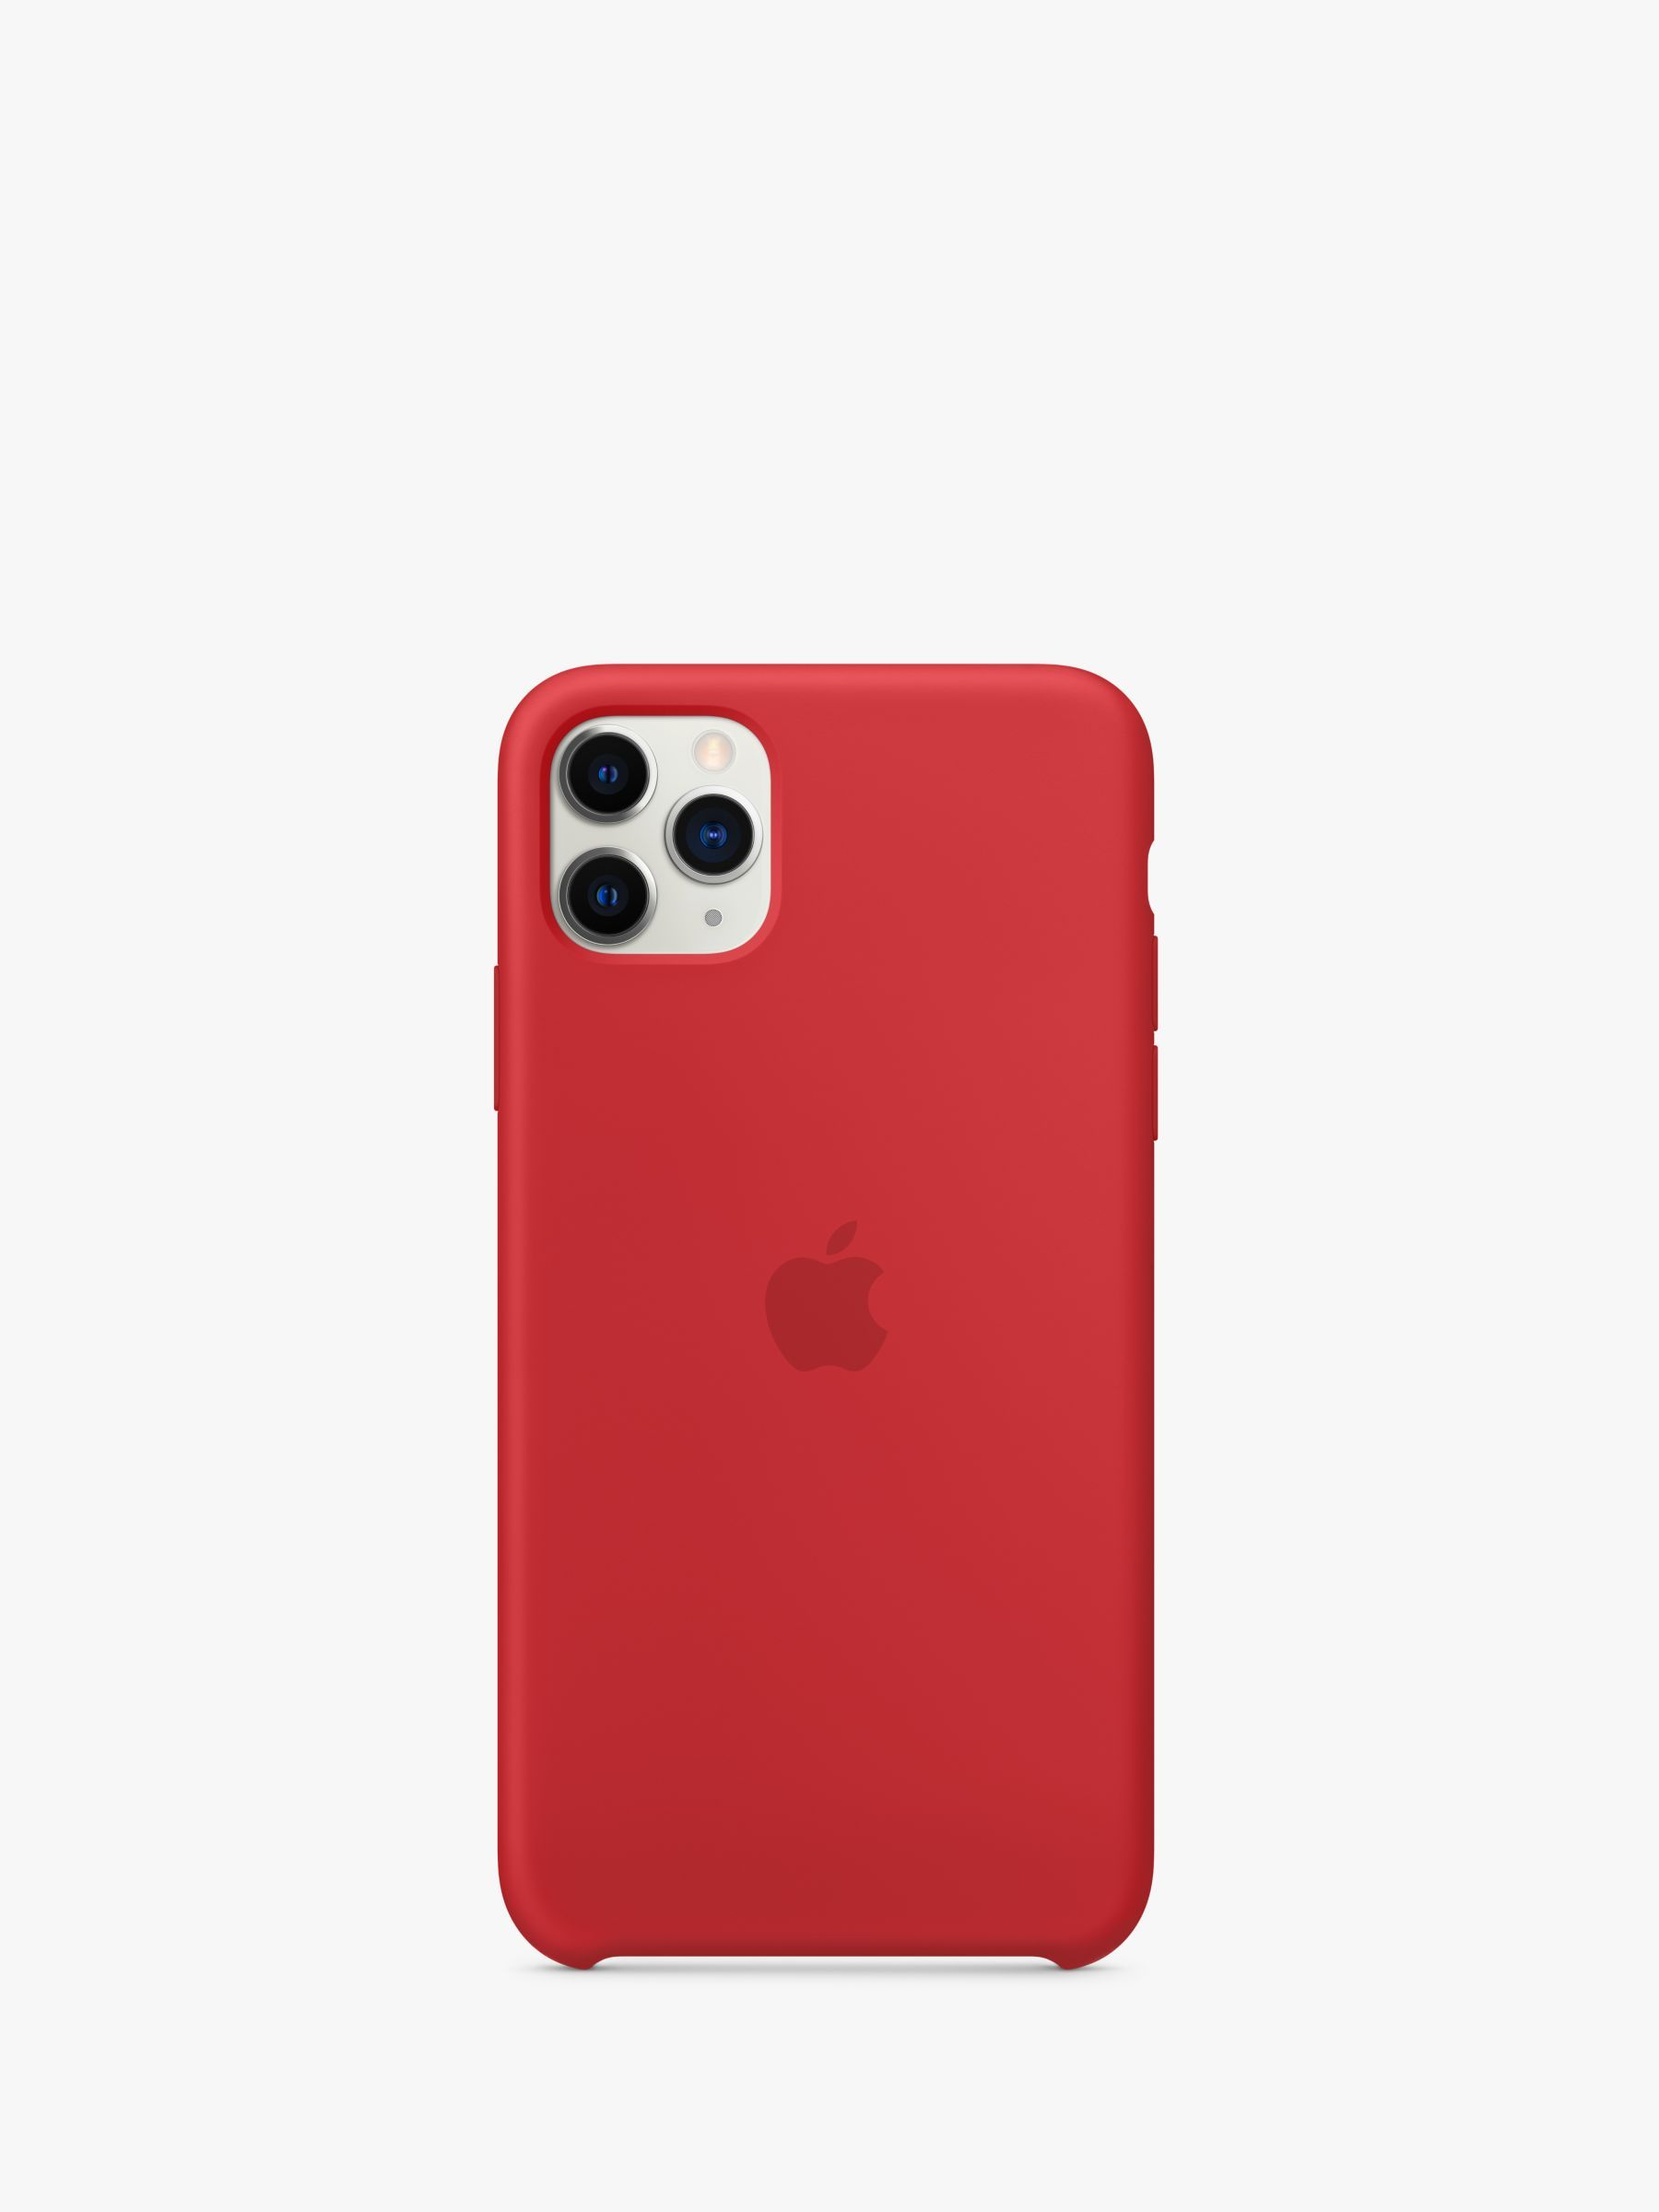 Apple silicone case for iphone 11 pro max productred in